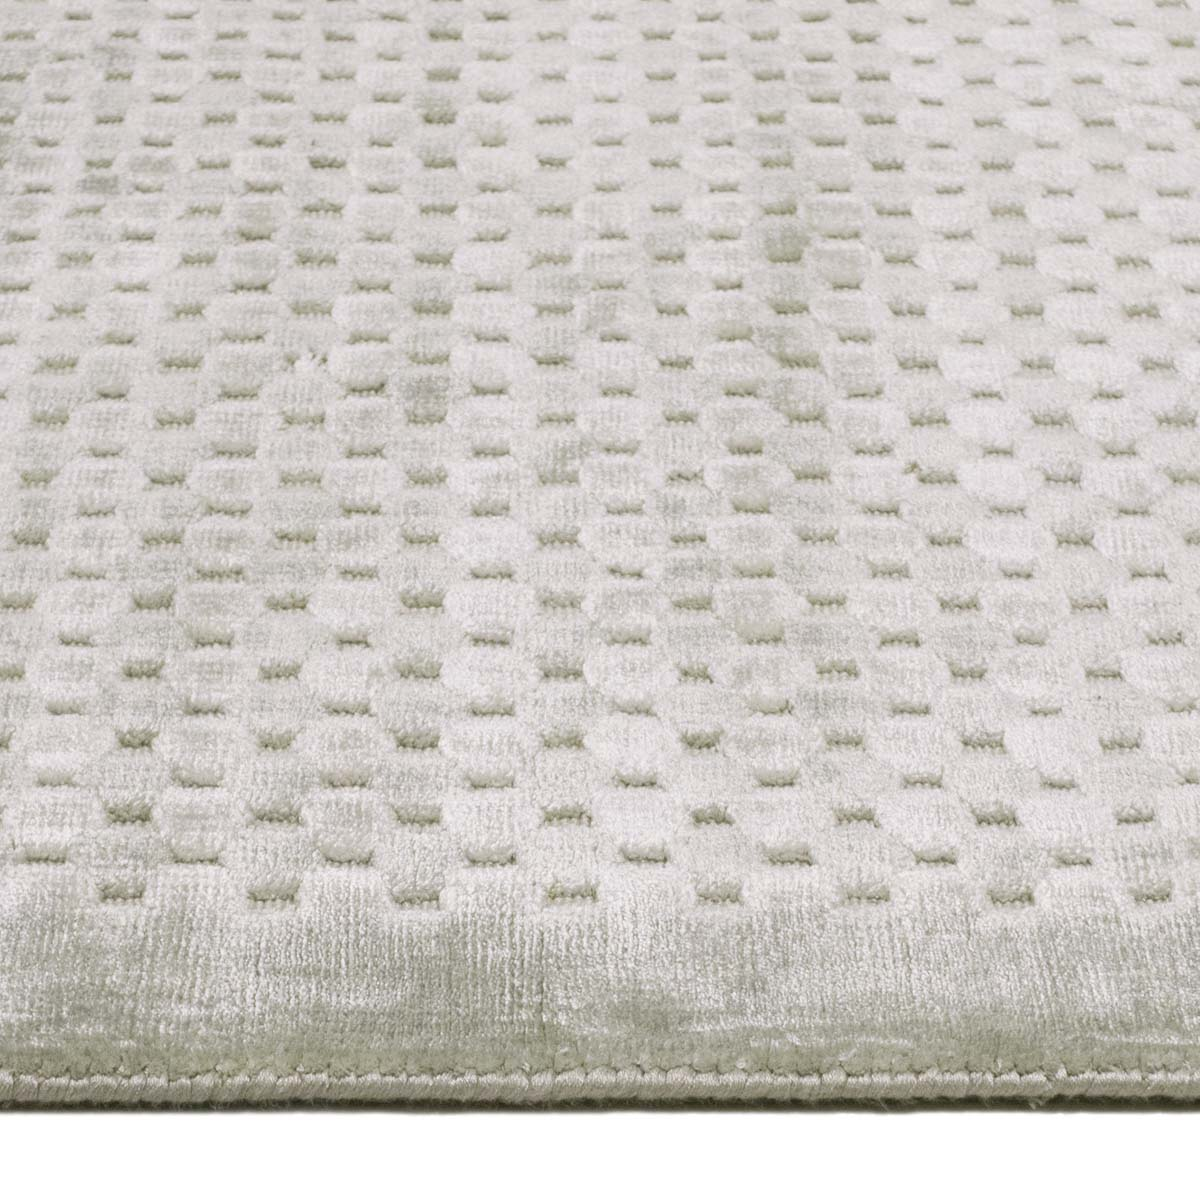 STARB1_LuxeSpotted_Beige_160x230-edge